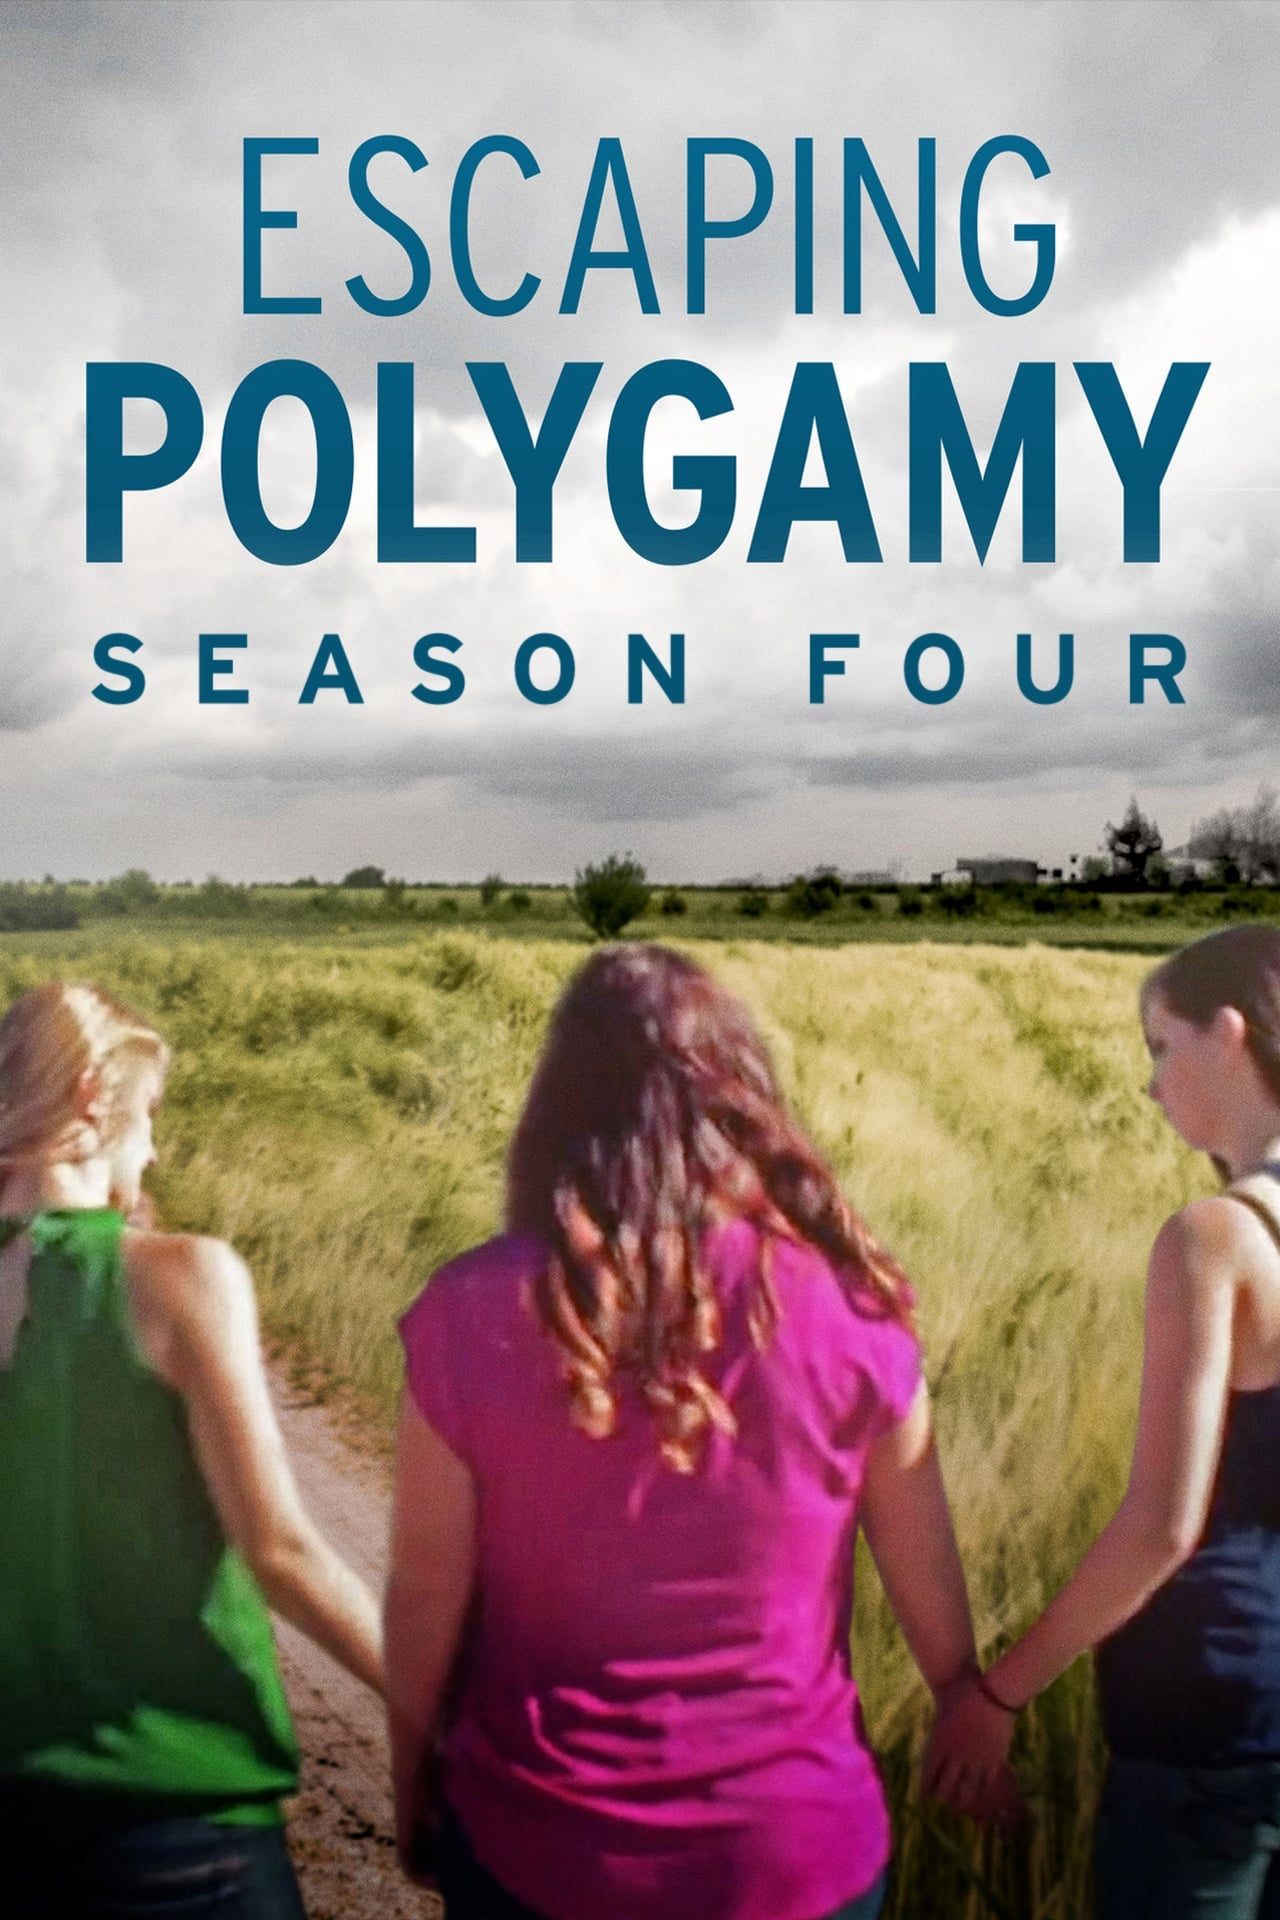 Escaping Polygamy Season 4 (2018) putlockers cafe